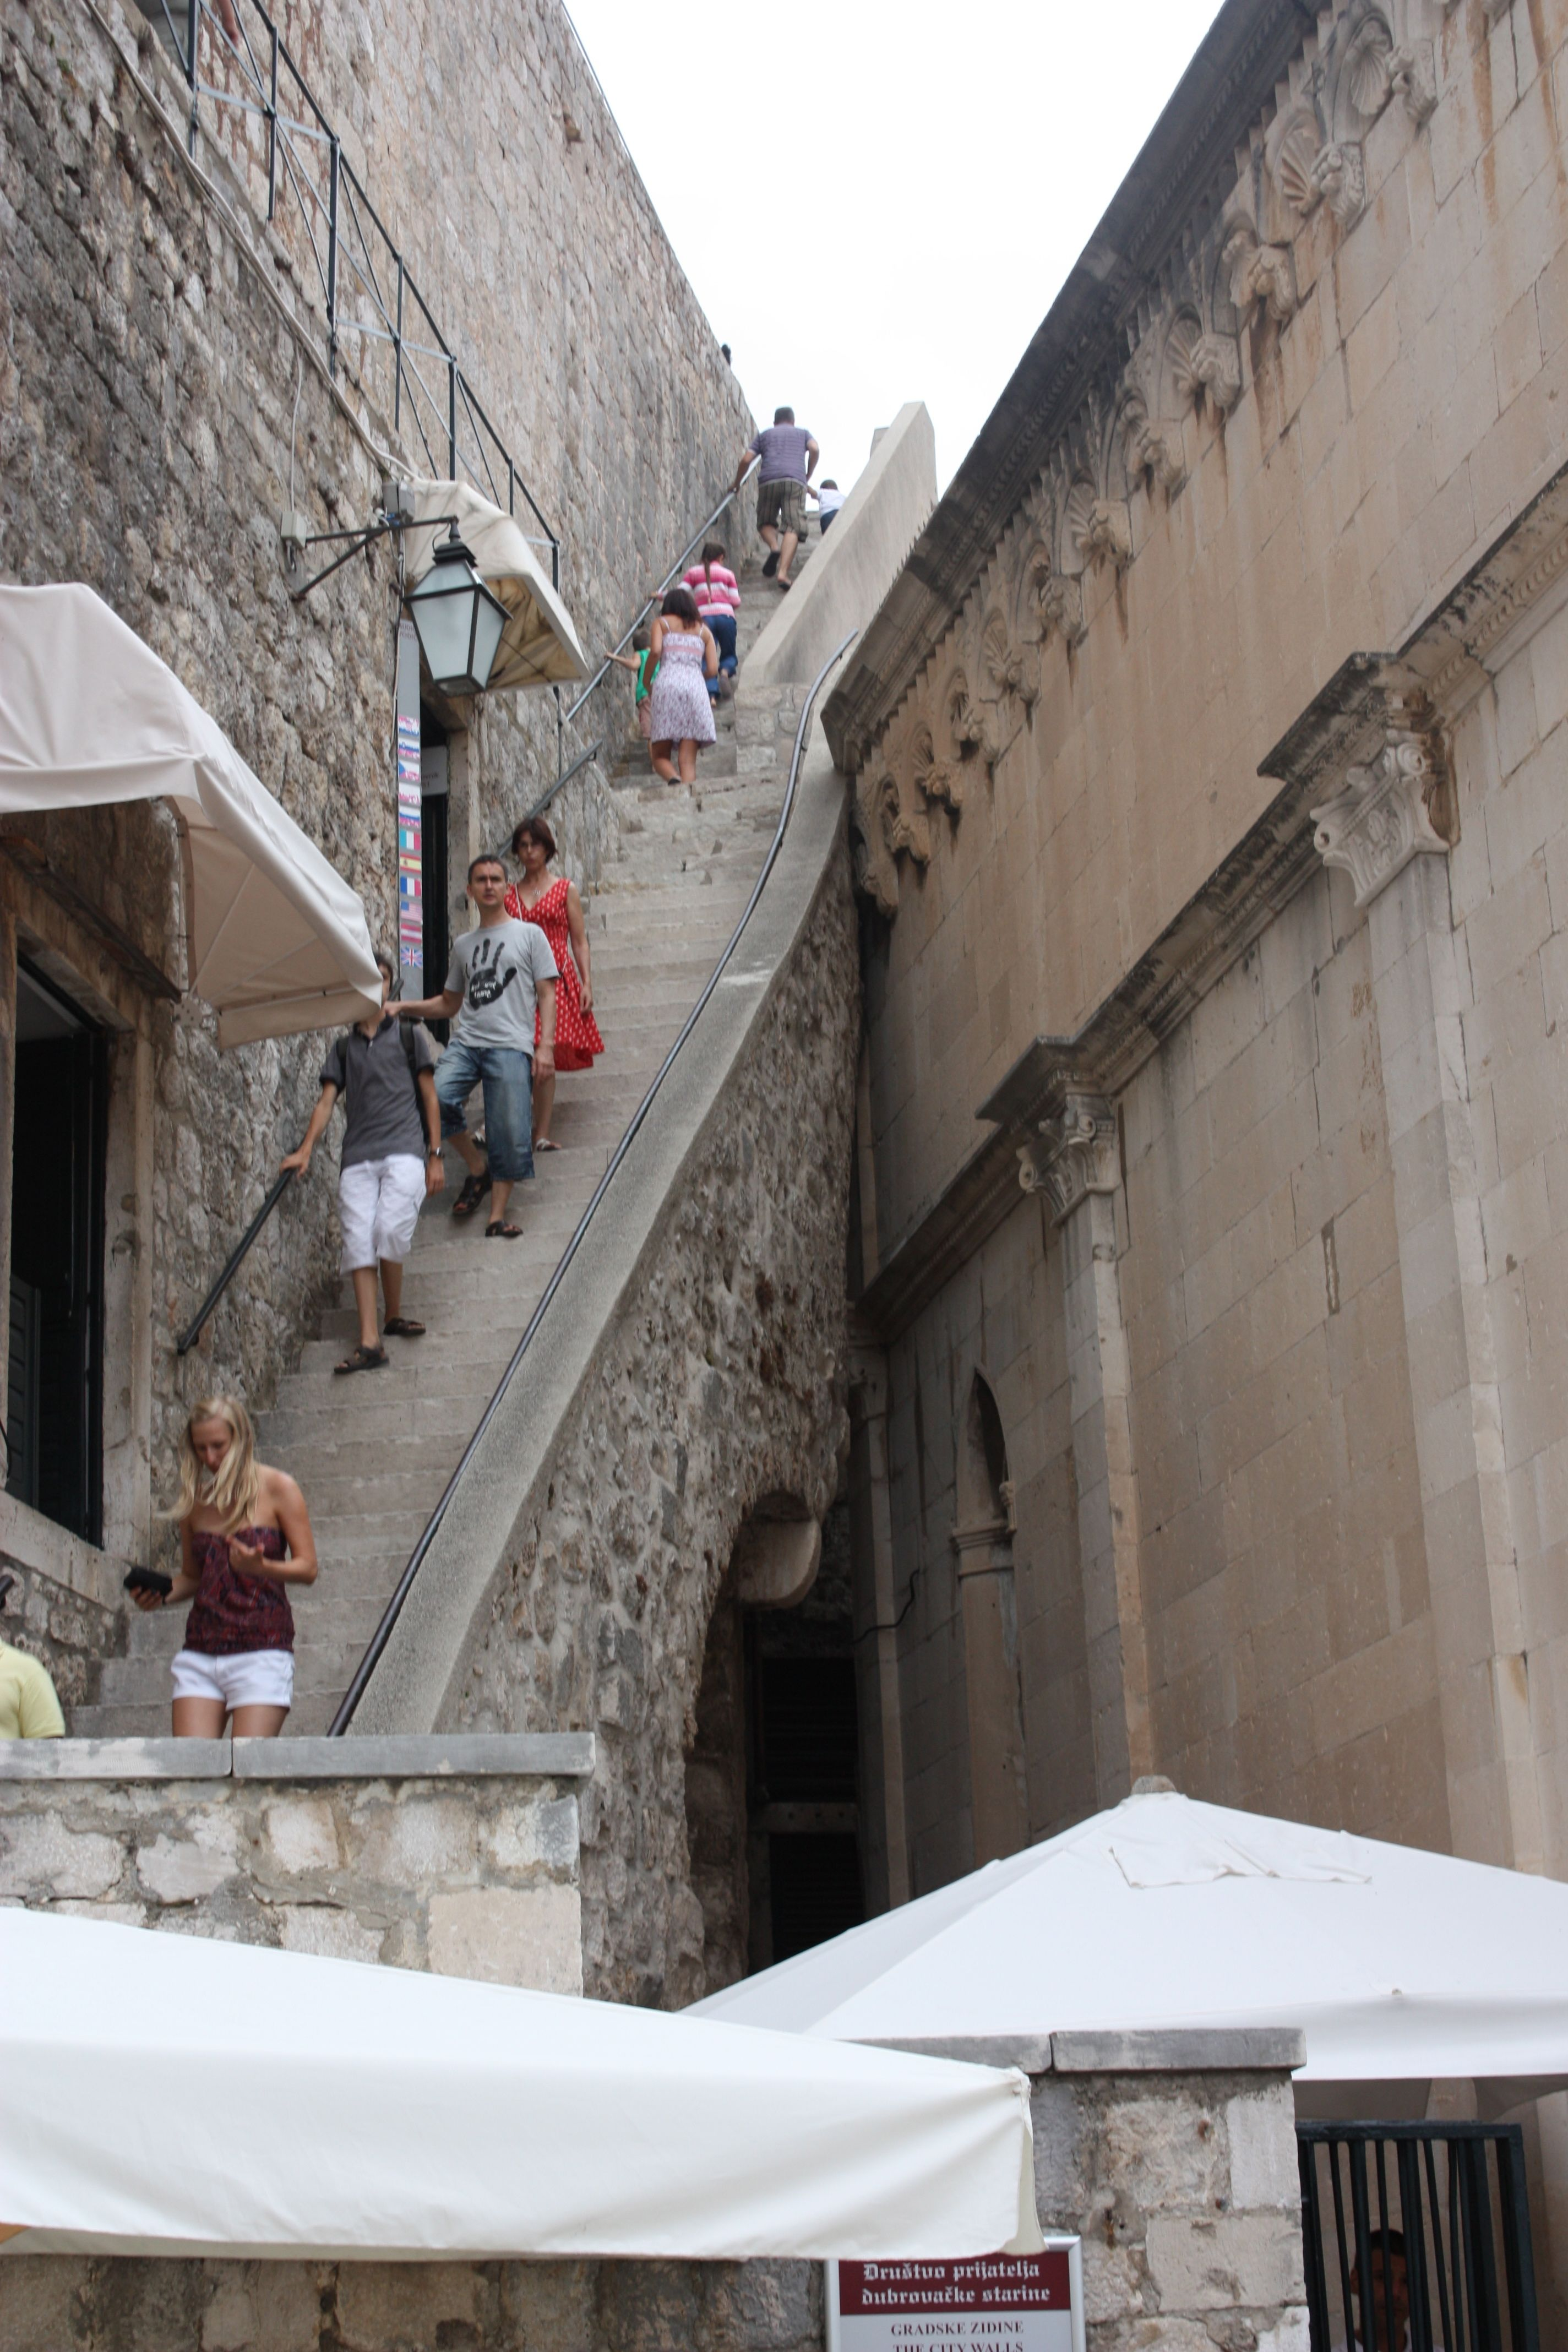 FileCity Walls Dubrovnik July 2011 01jpg  Wikimedia Commons